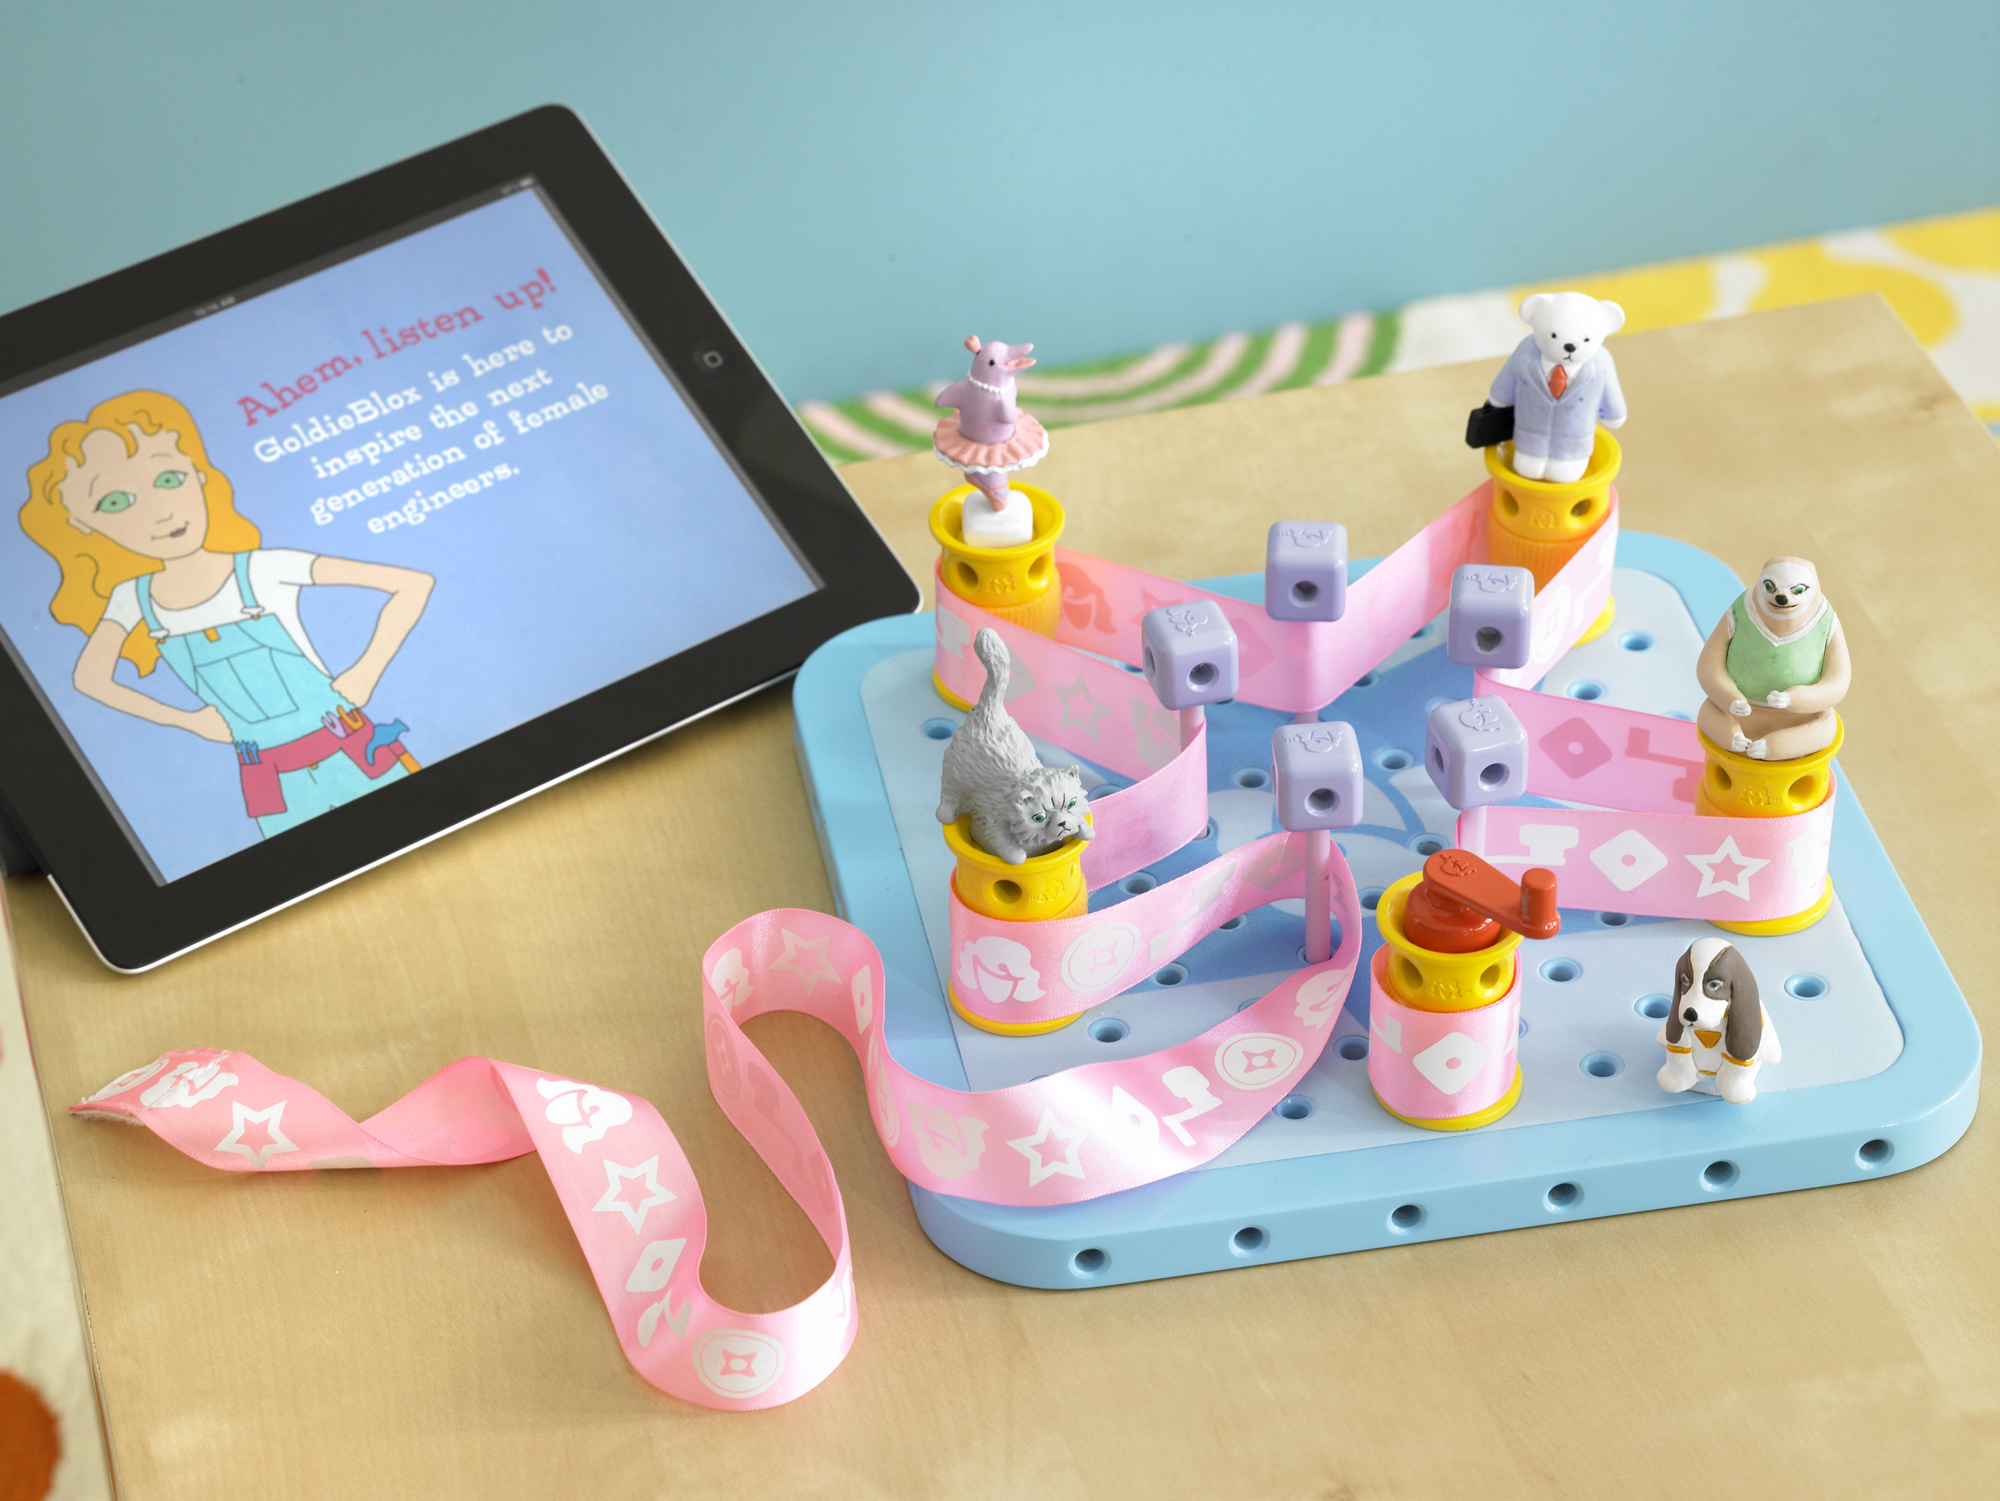 Gol Blox Aims to Build Engineering Interest in Young Girls